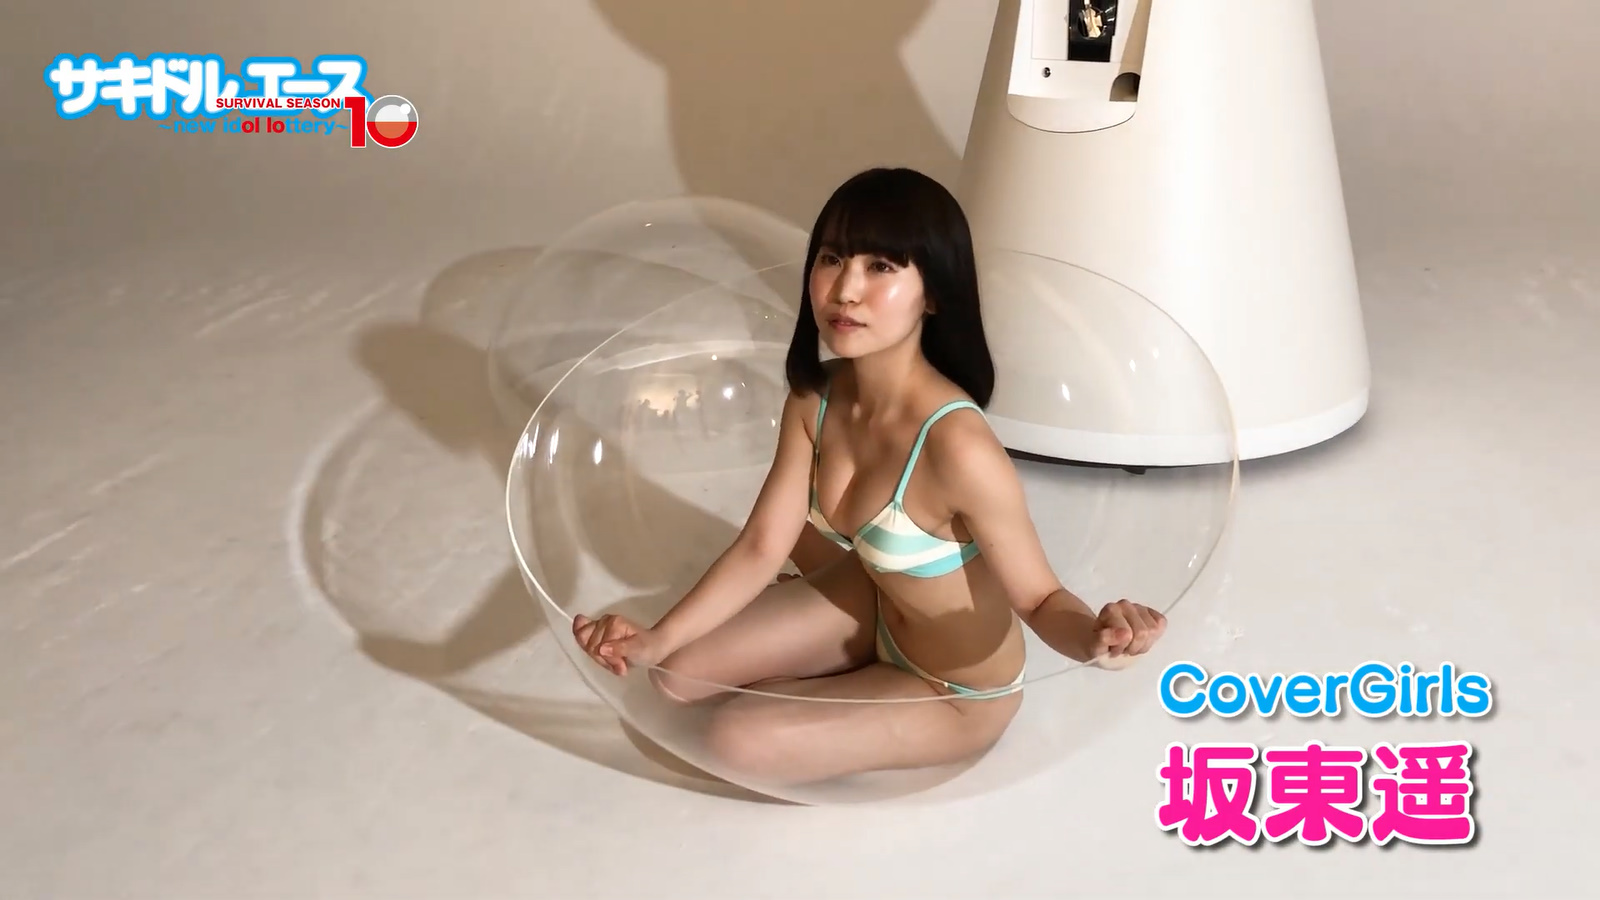 Sakidol Ace 10 Introduction Movie Capture of Swimsuit098